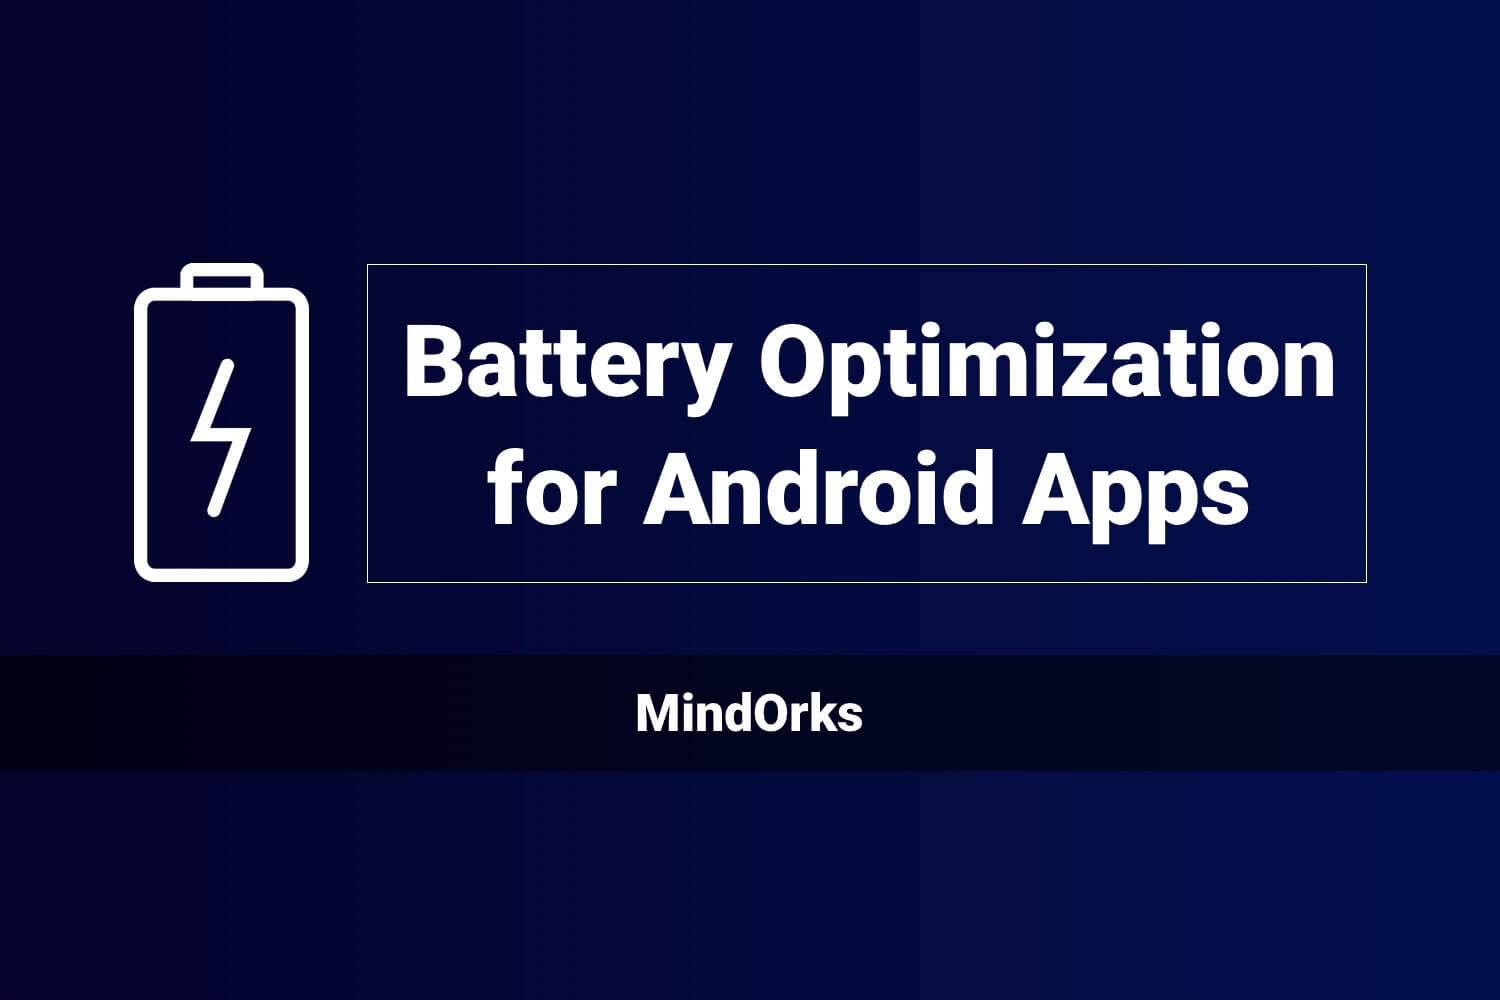 Battery Optimization for Android Apps